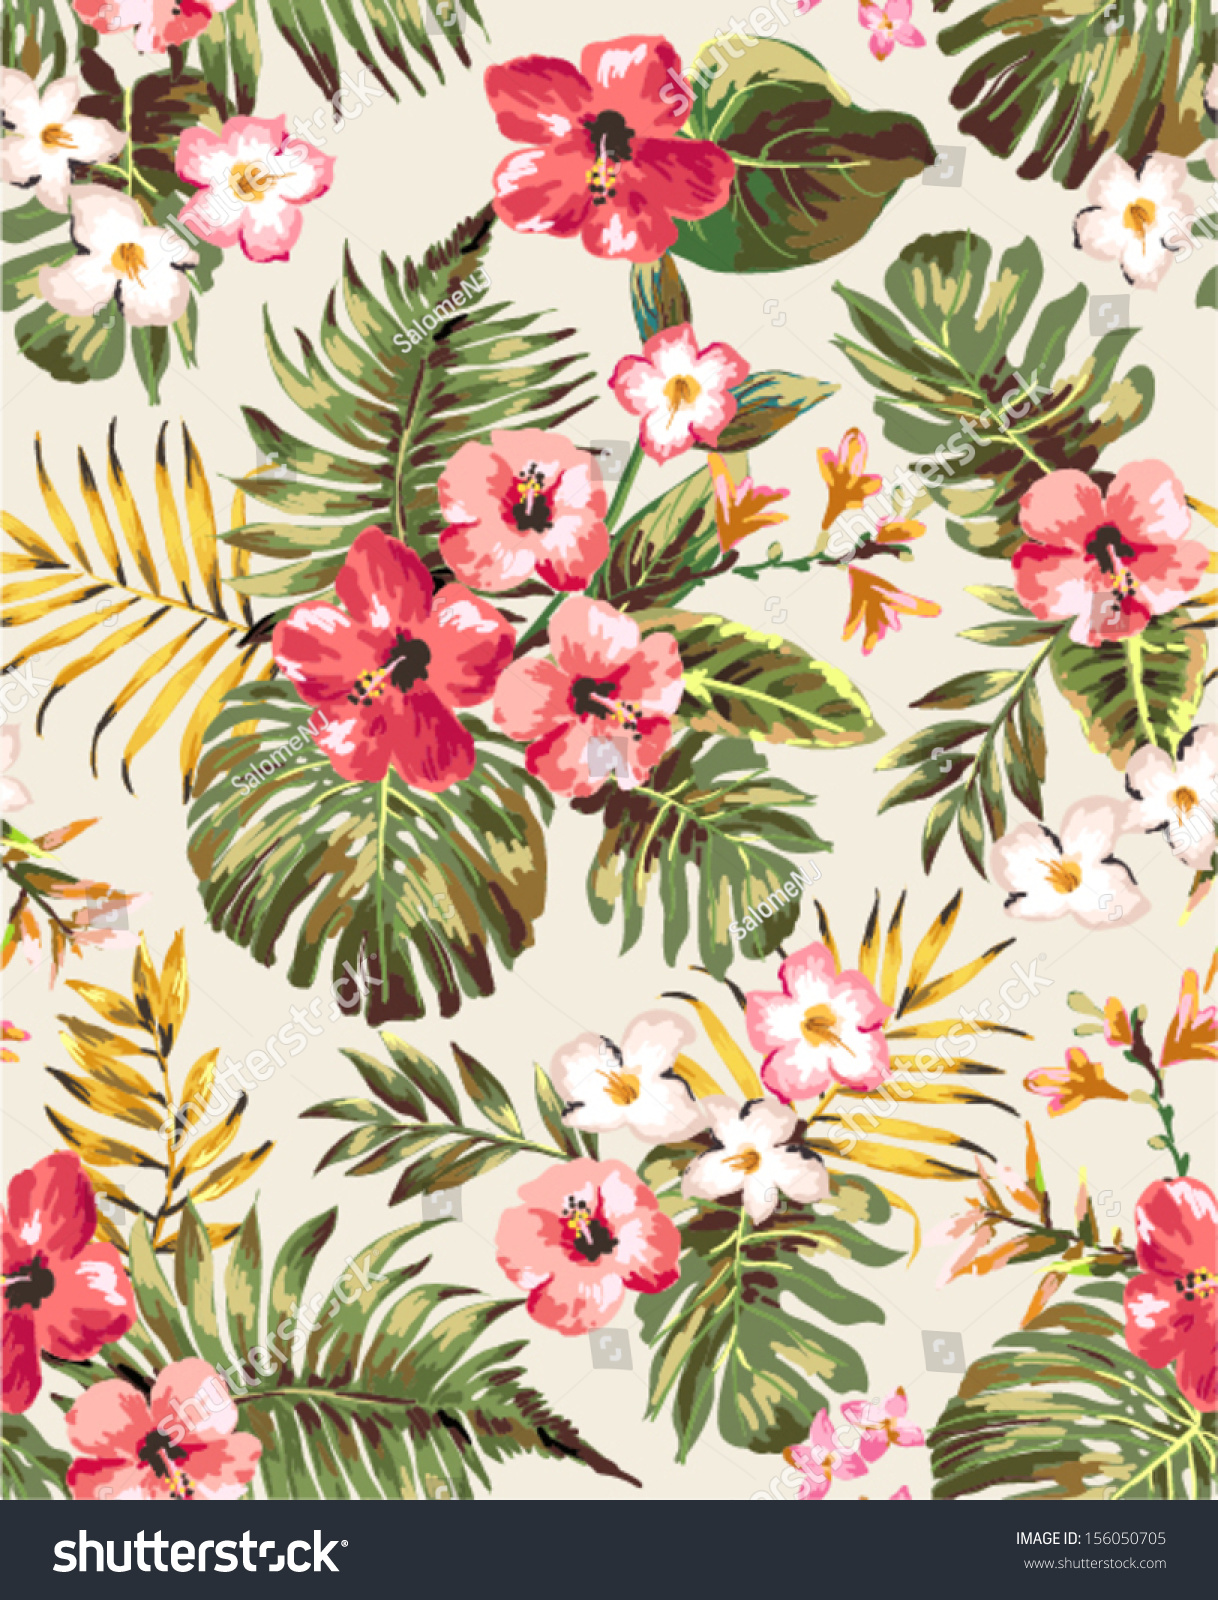 Tropical print background tumblr tropical patterns related keywords - Images Of Images Of Tropical Costume Ideas Wallpaper